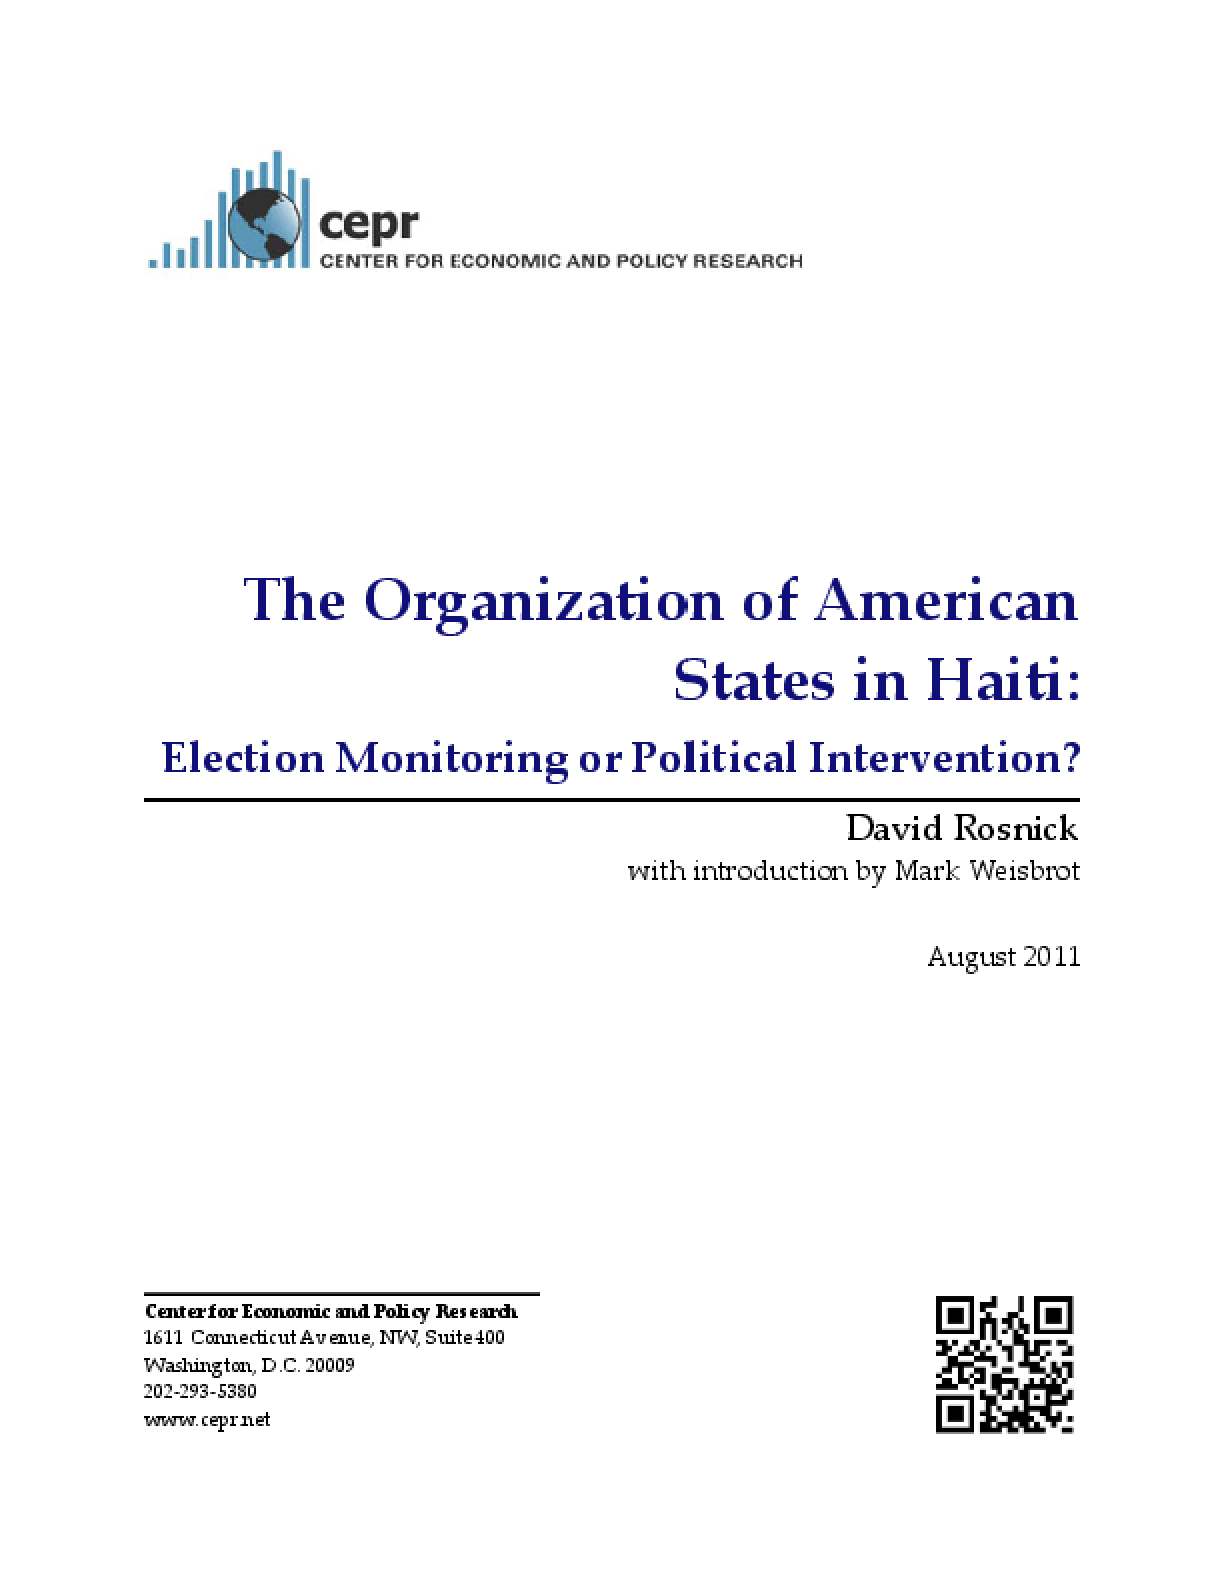 Organization of American States in Haiti: Election Monitoring or Political Intervention?, The?